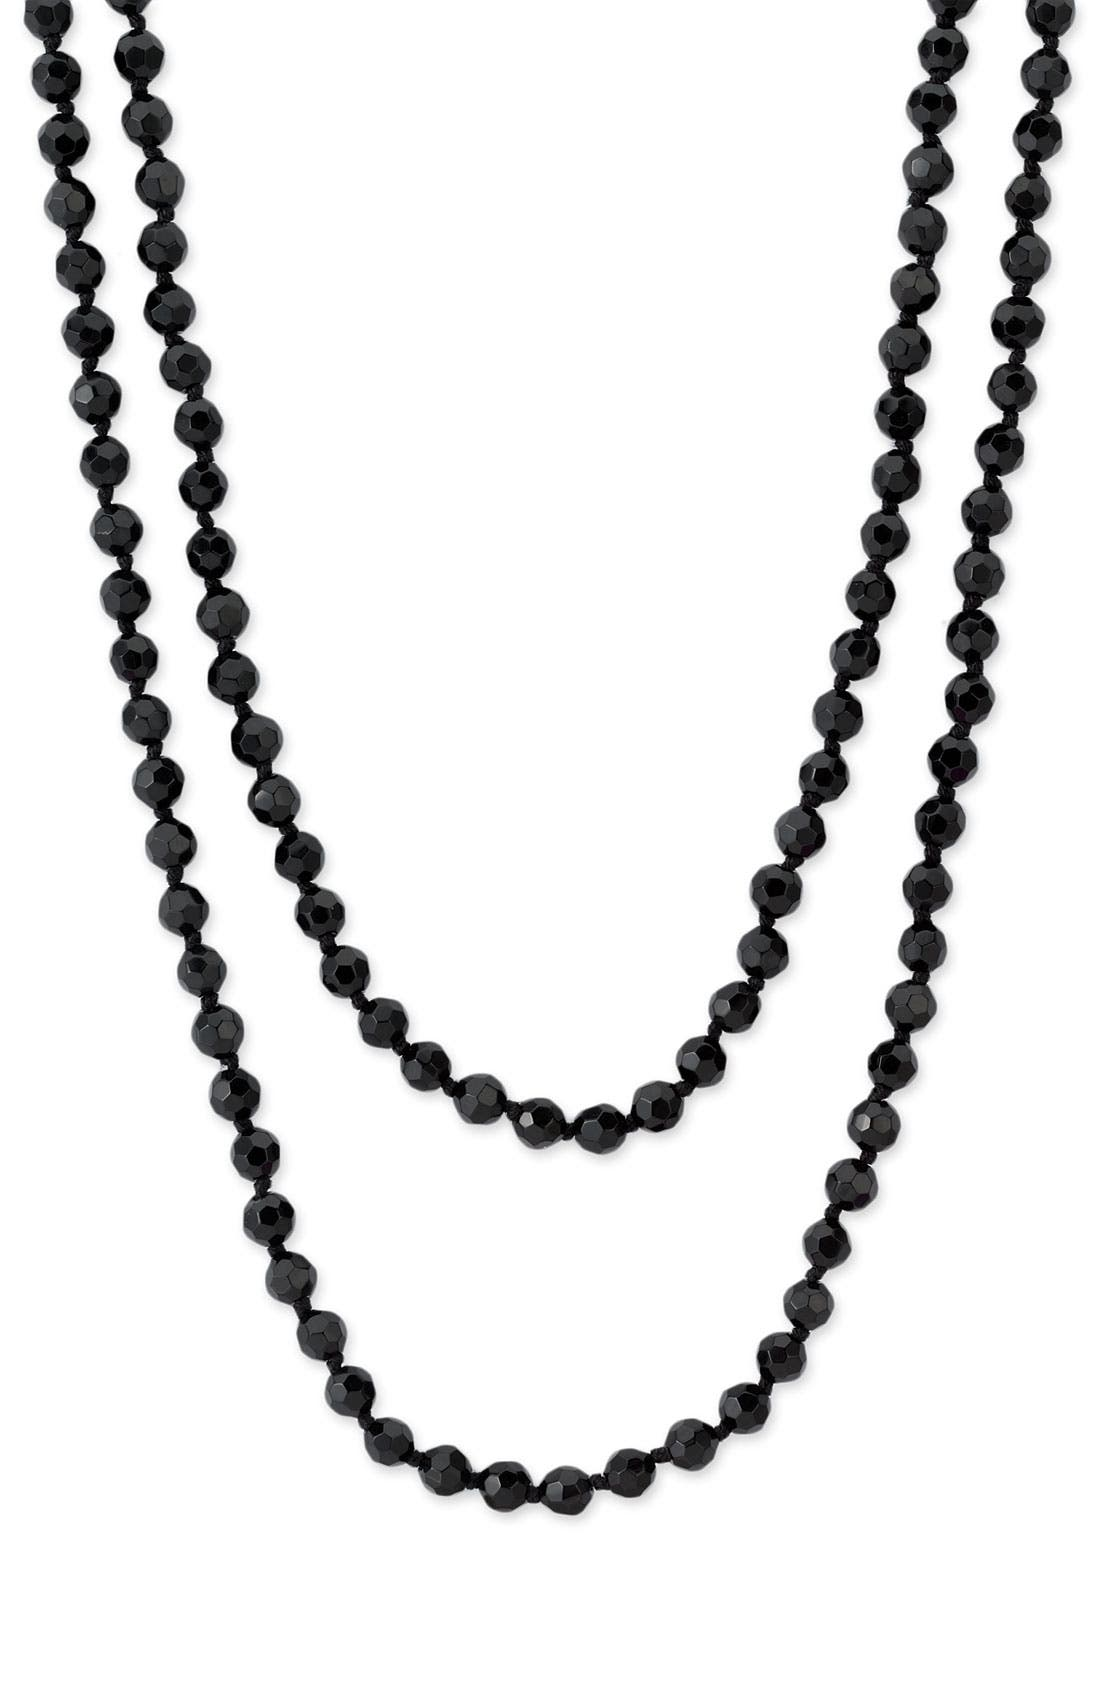 6mm Glass Pearl Extra Long Strand Necklace,                             Main thumbnail 1, color,                             001